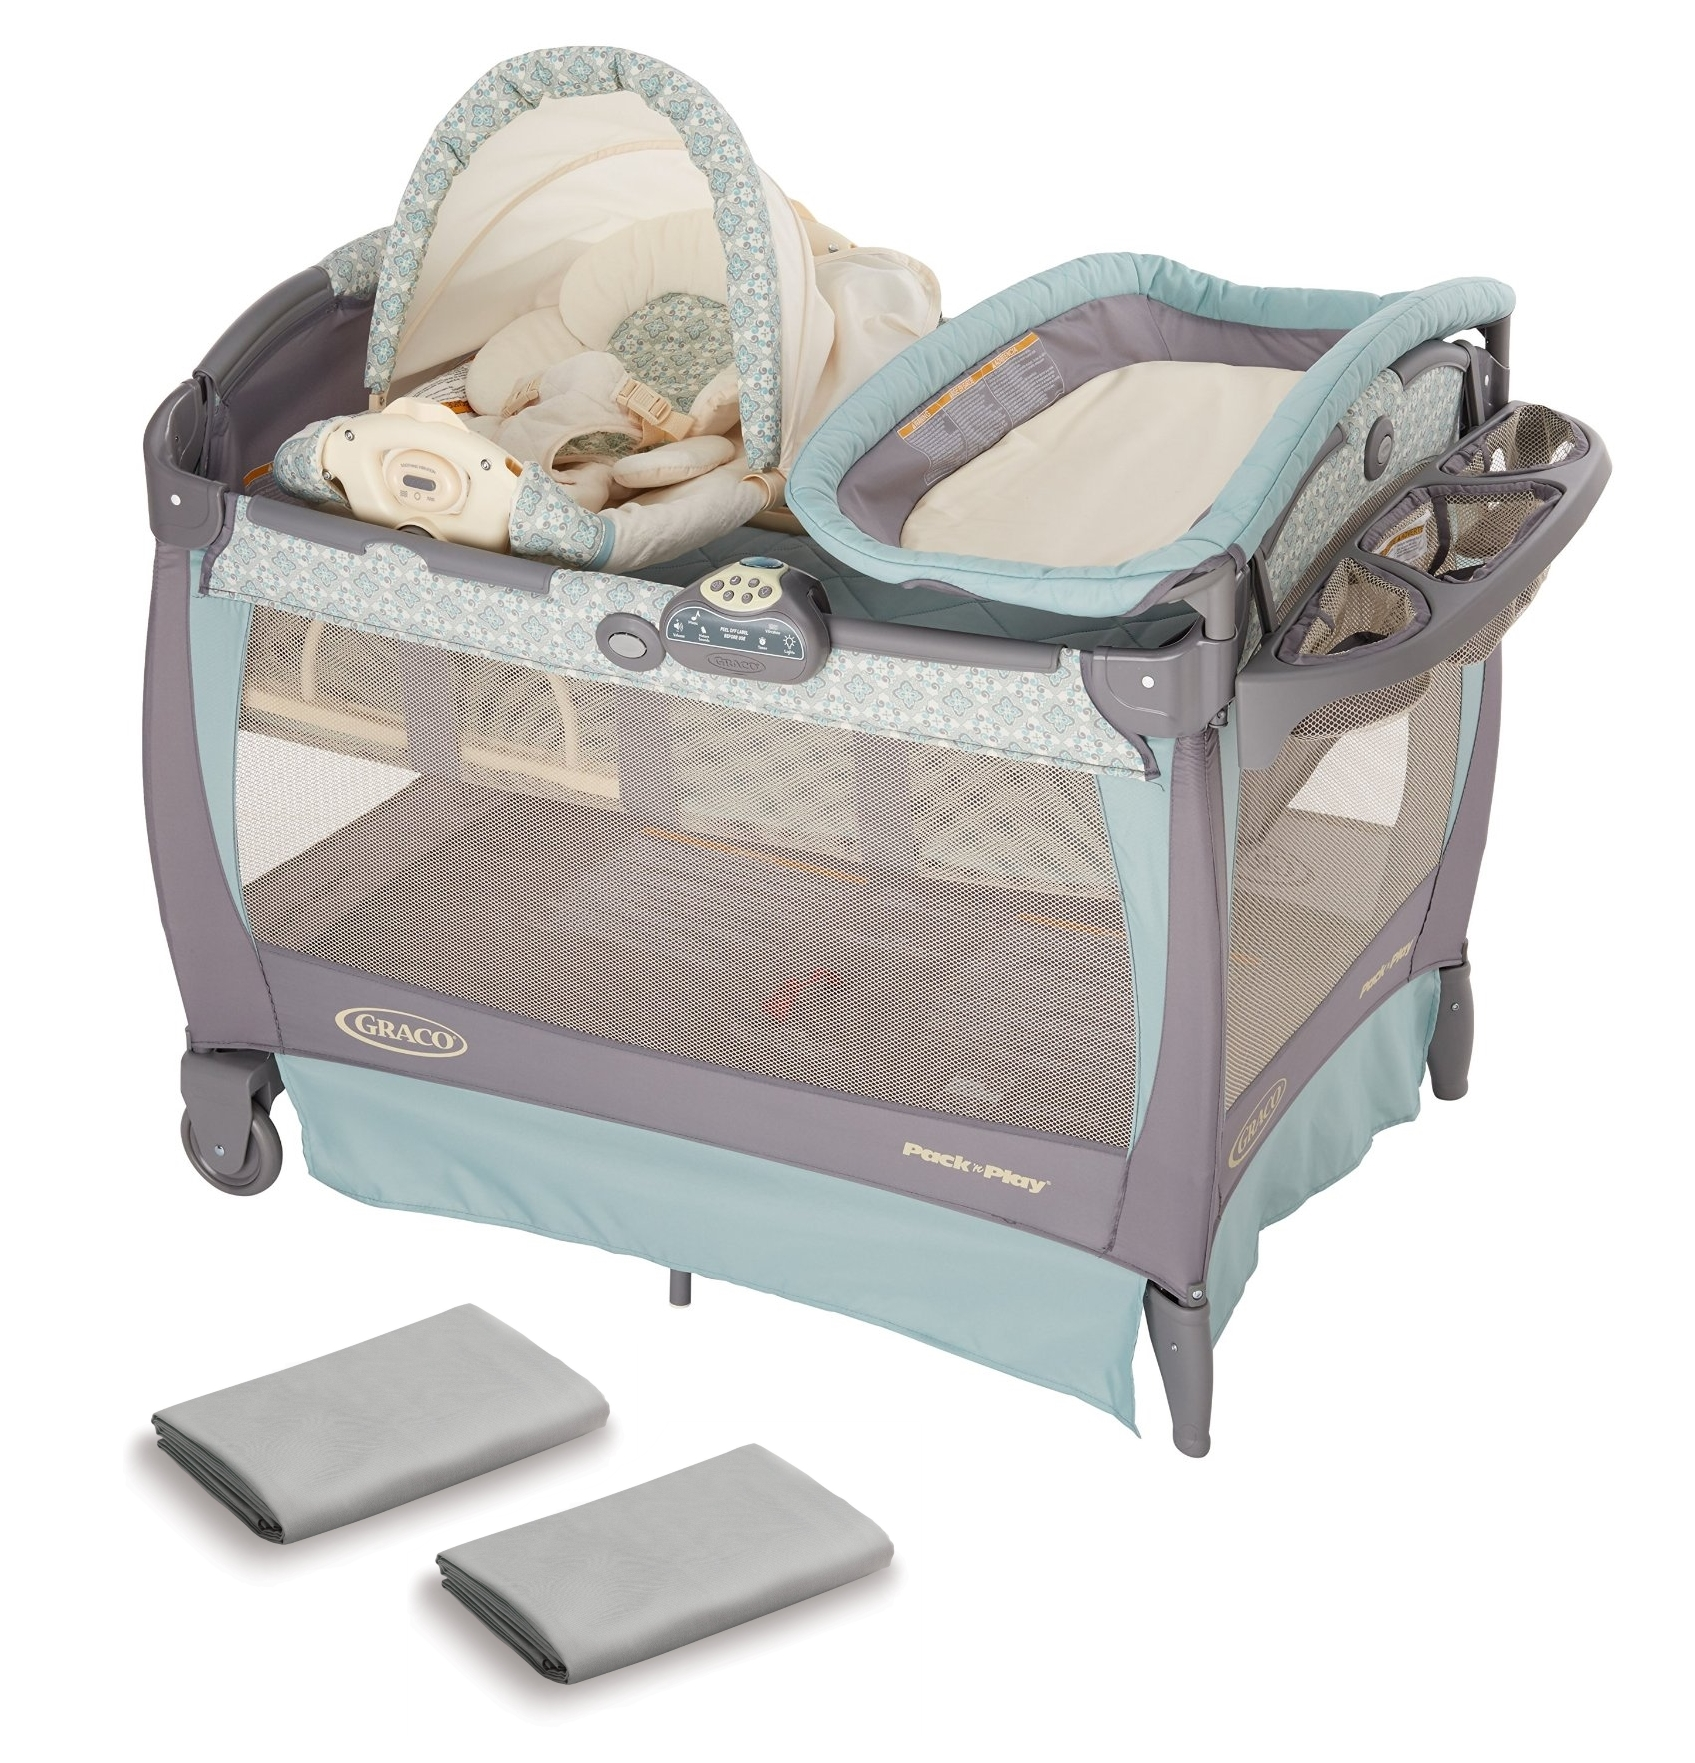 Graco Pack N Play Play Pen Bassinet Changer with Cuddle Cover Rocking Seat & SHeets by Graco